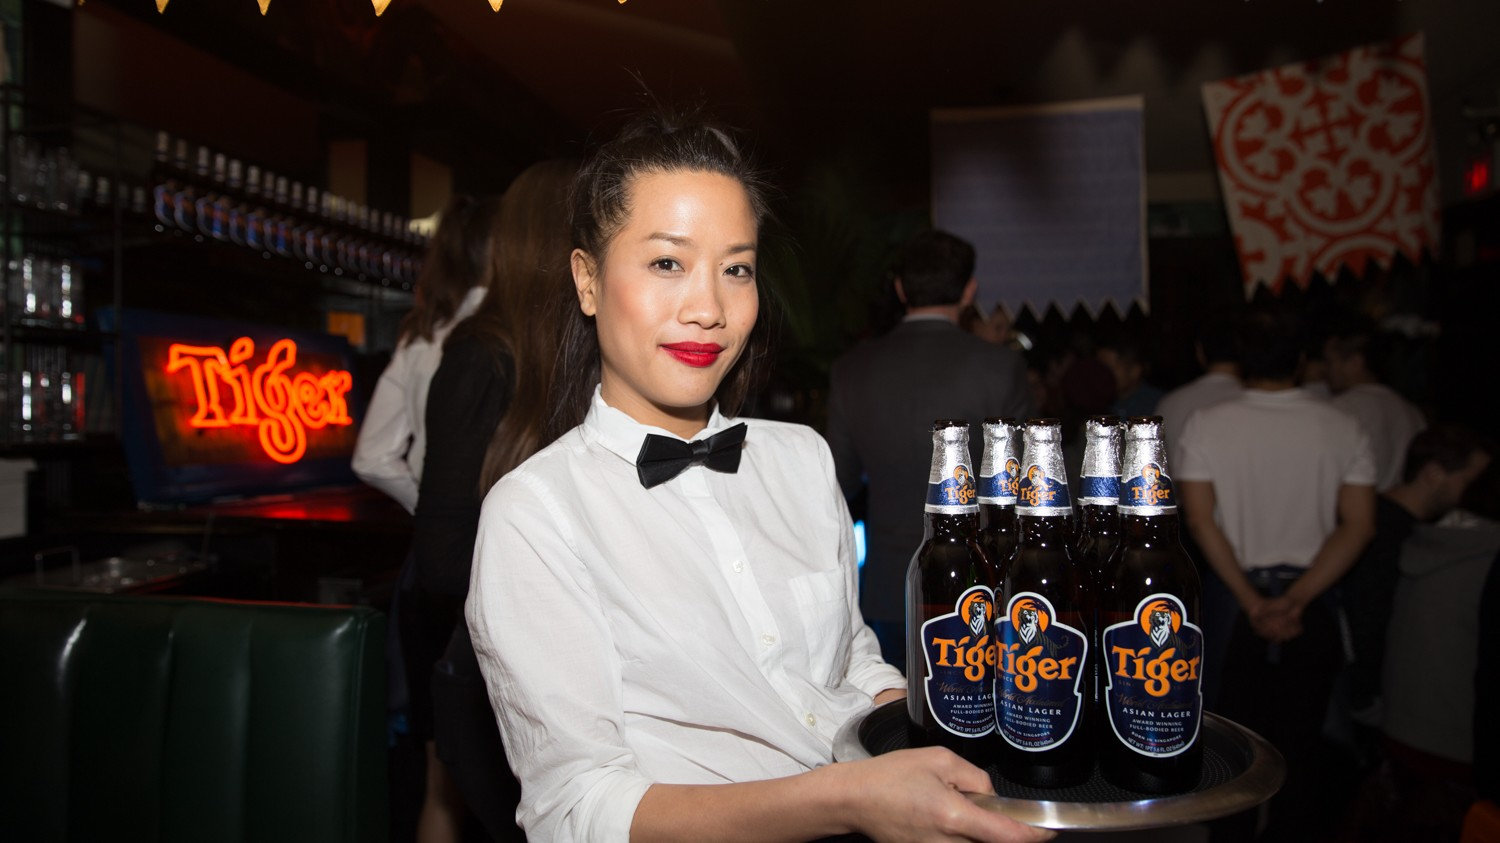 waitress-bringing-tiger-beer-to-guests-please-credit-laura-june-kirsch